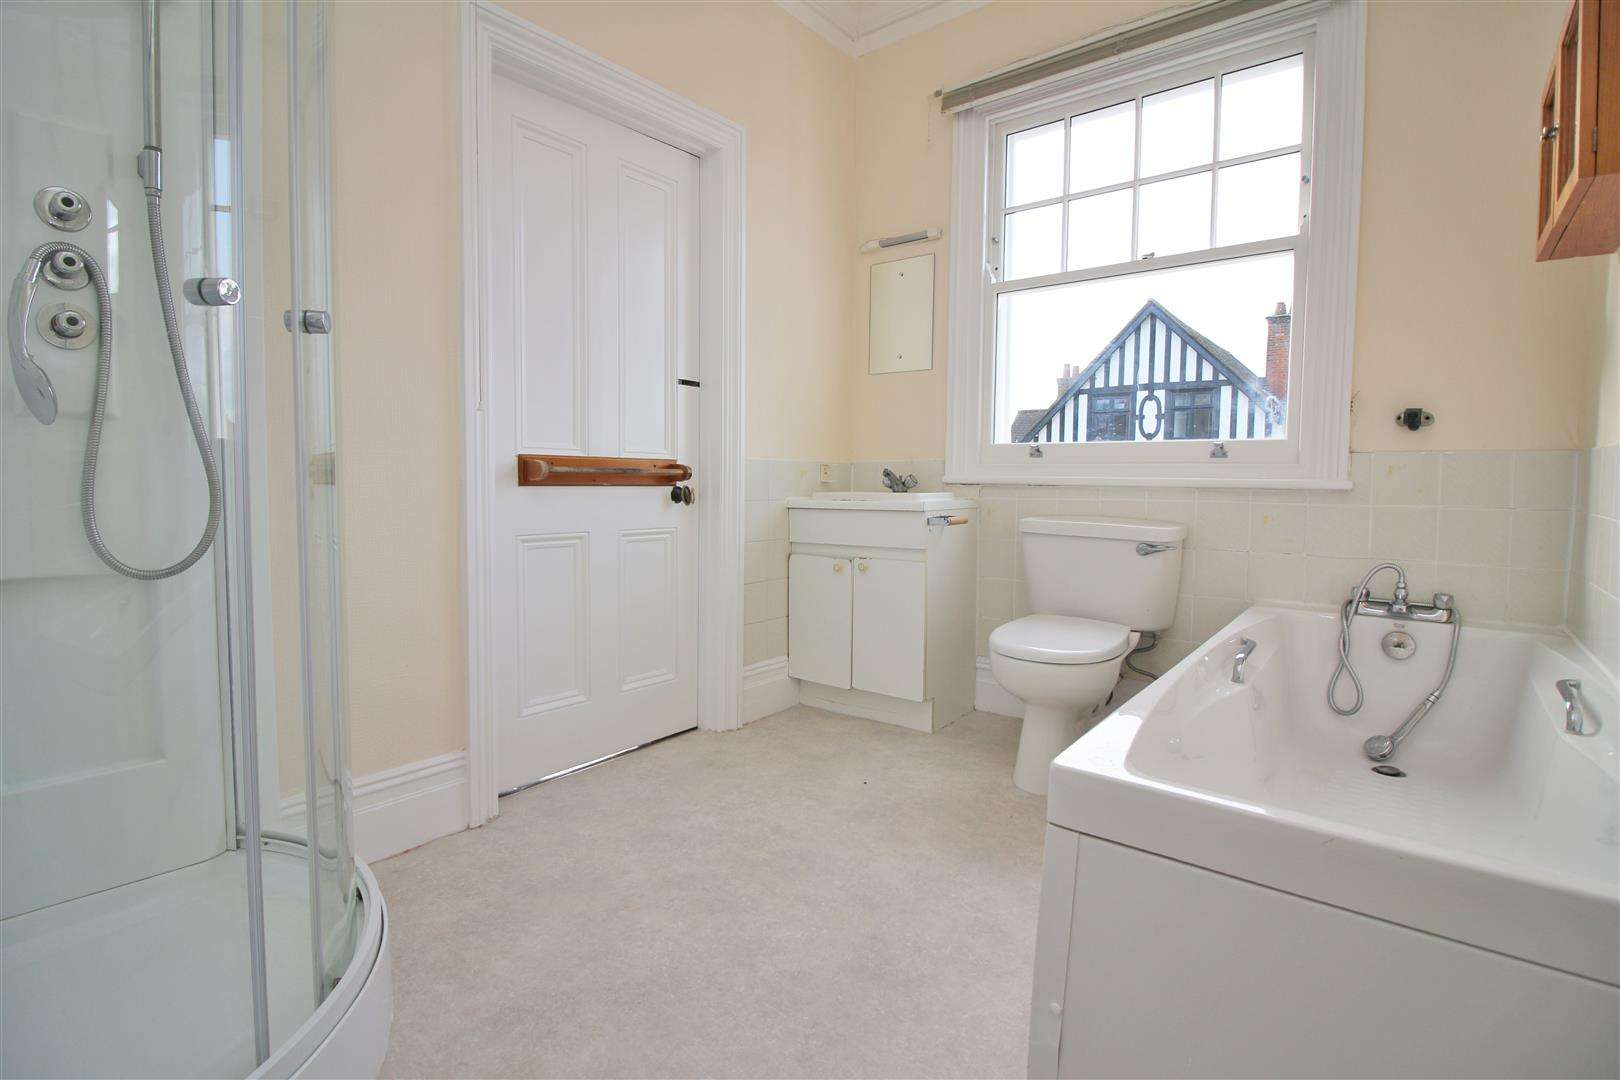 5 bed to rent - (Property Image 12)